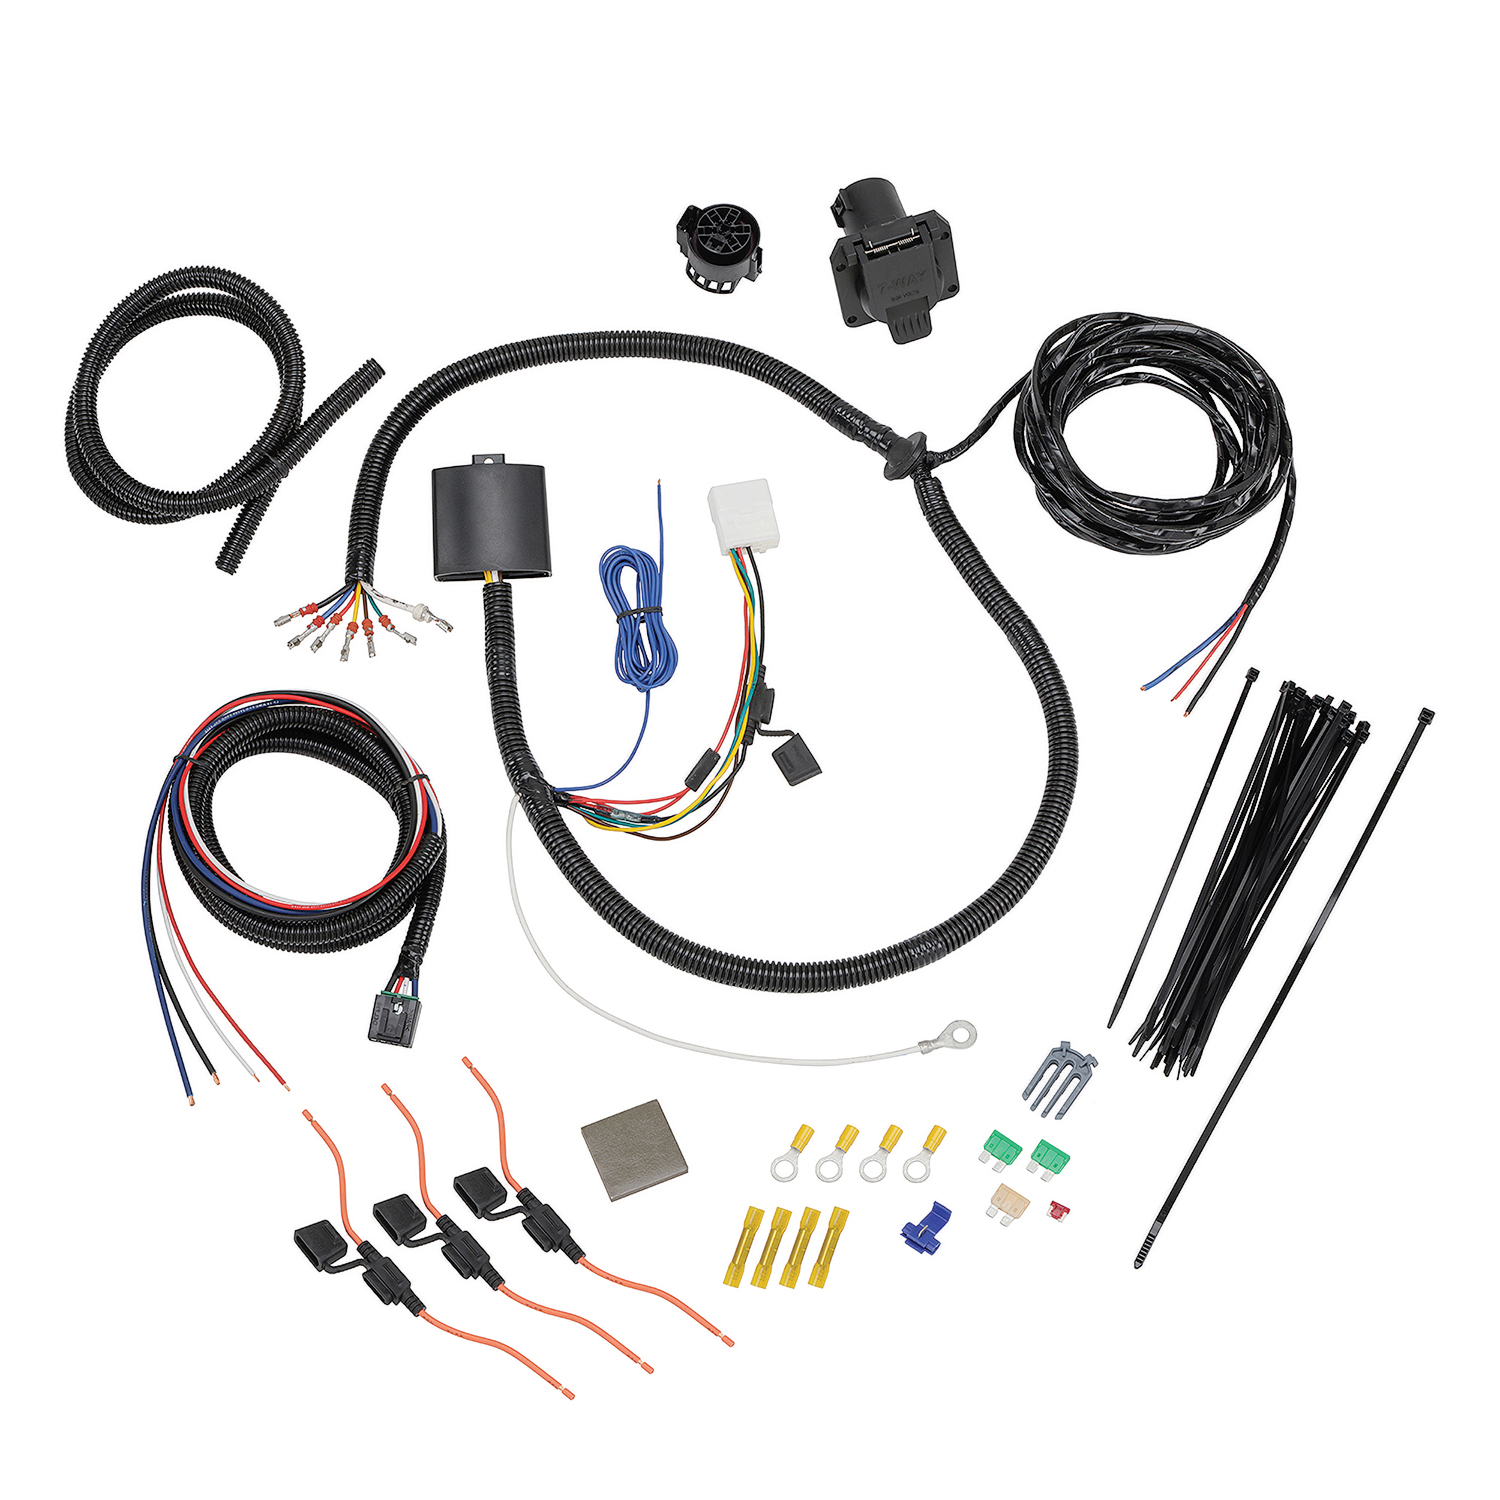 hight resolution of tekonsha 22119 trailer wiring connector wiring harness 7 way and plug and play for brake control